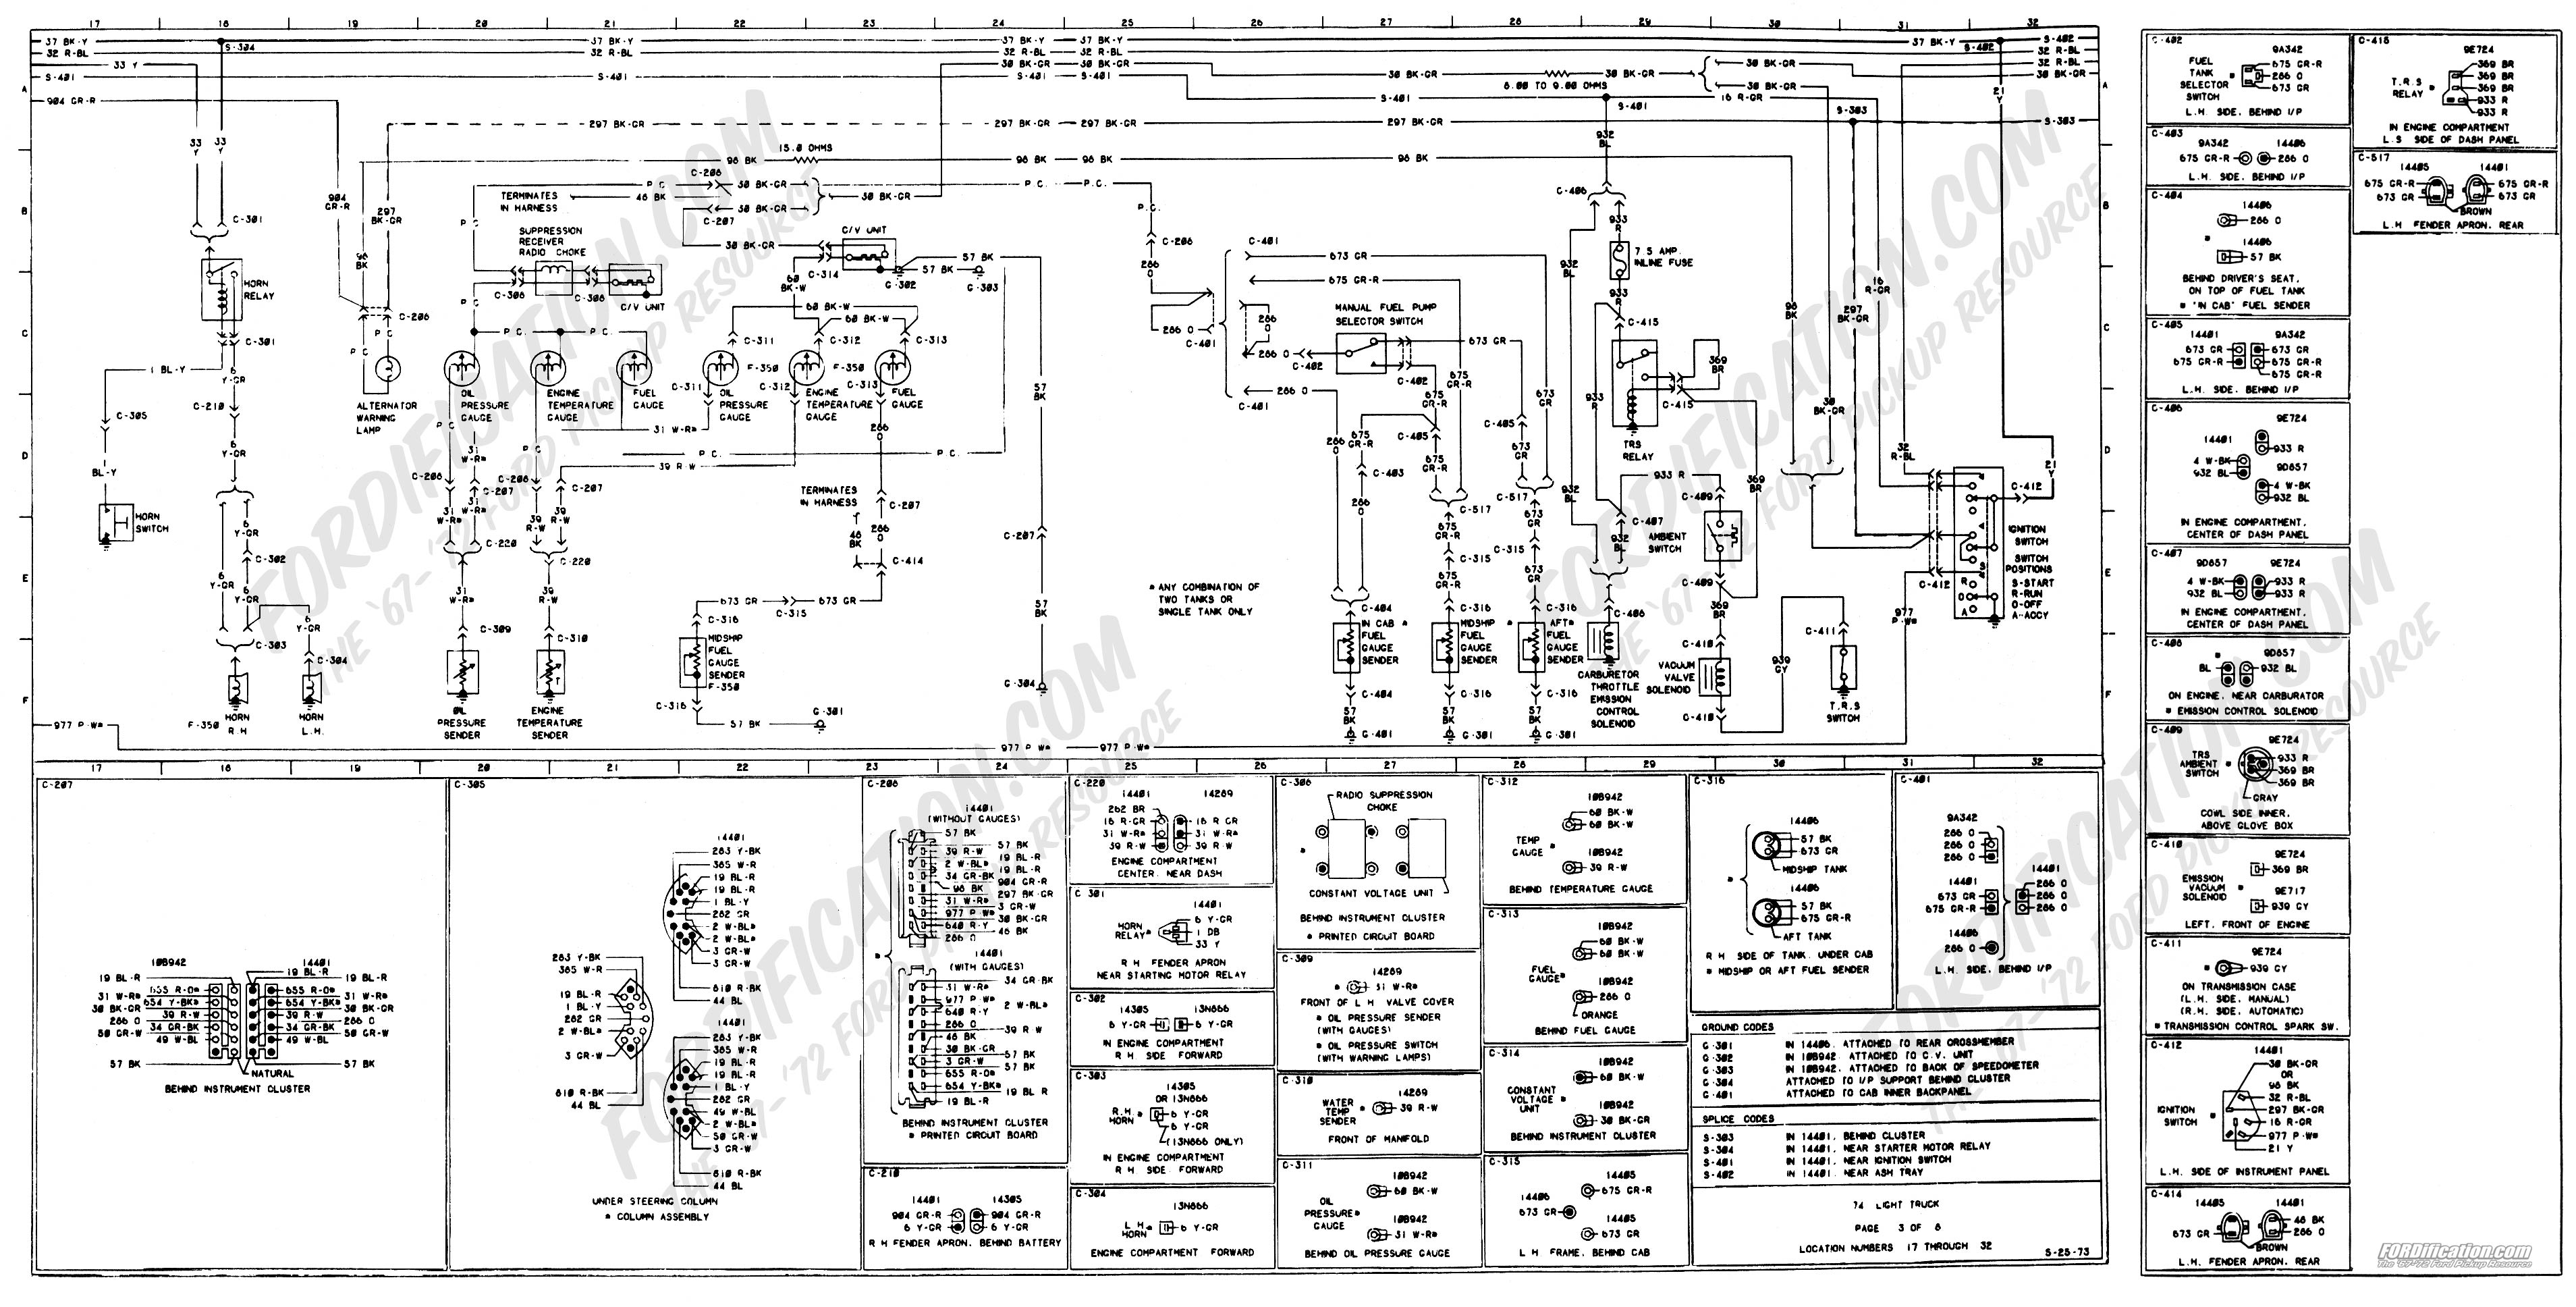 wiring_74master_3of8 1973 1979 ford truck wiring diagrams & schematics fordification net 99 sterling truck wiring diagram at reclaimingppi.co